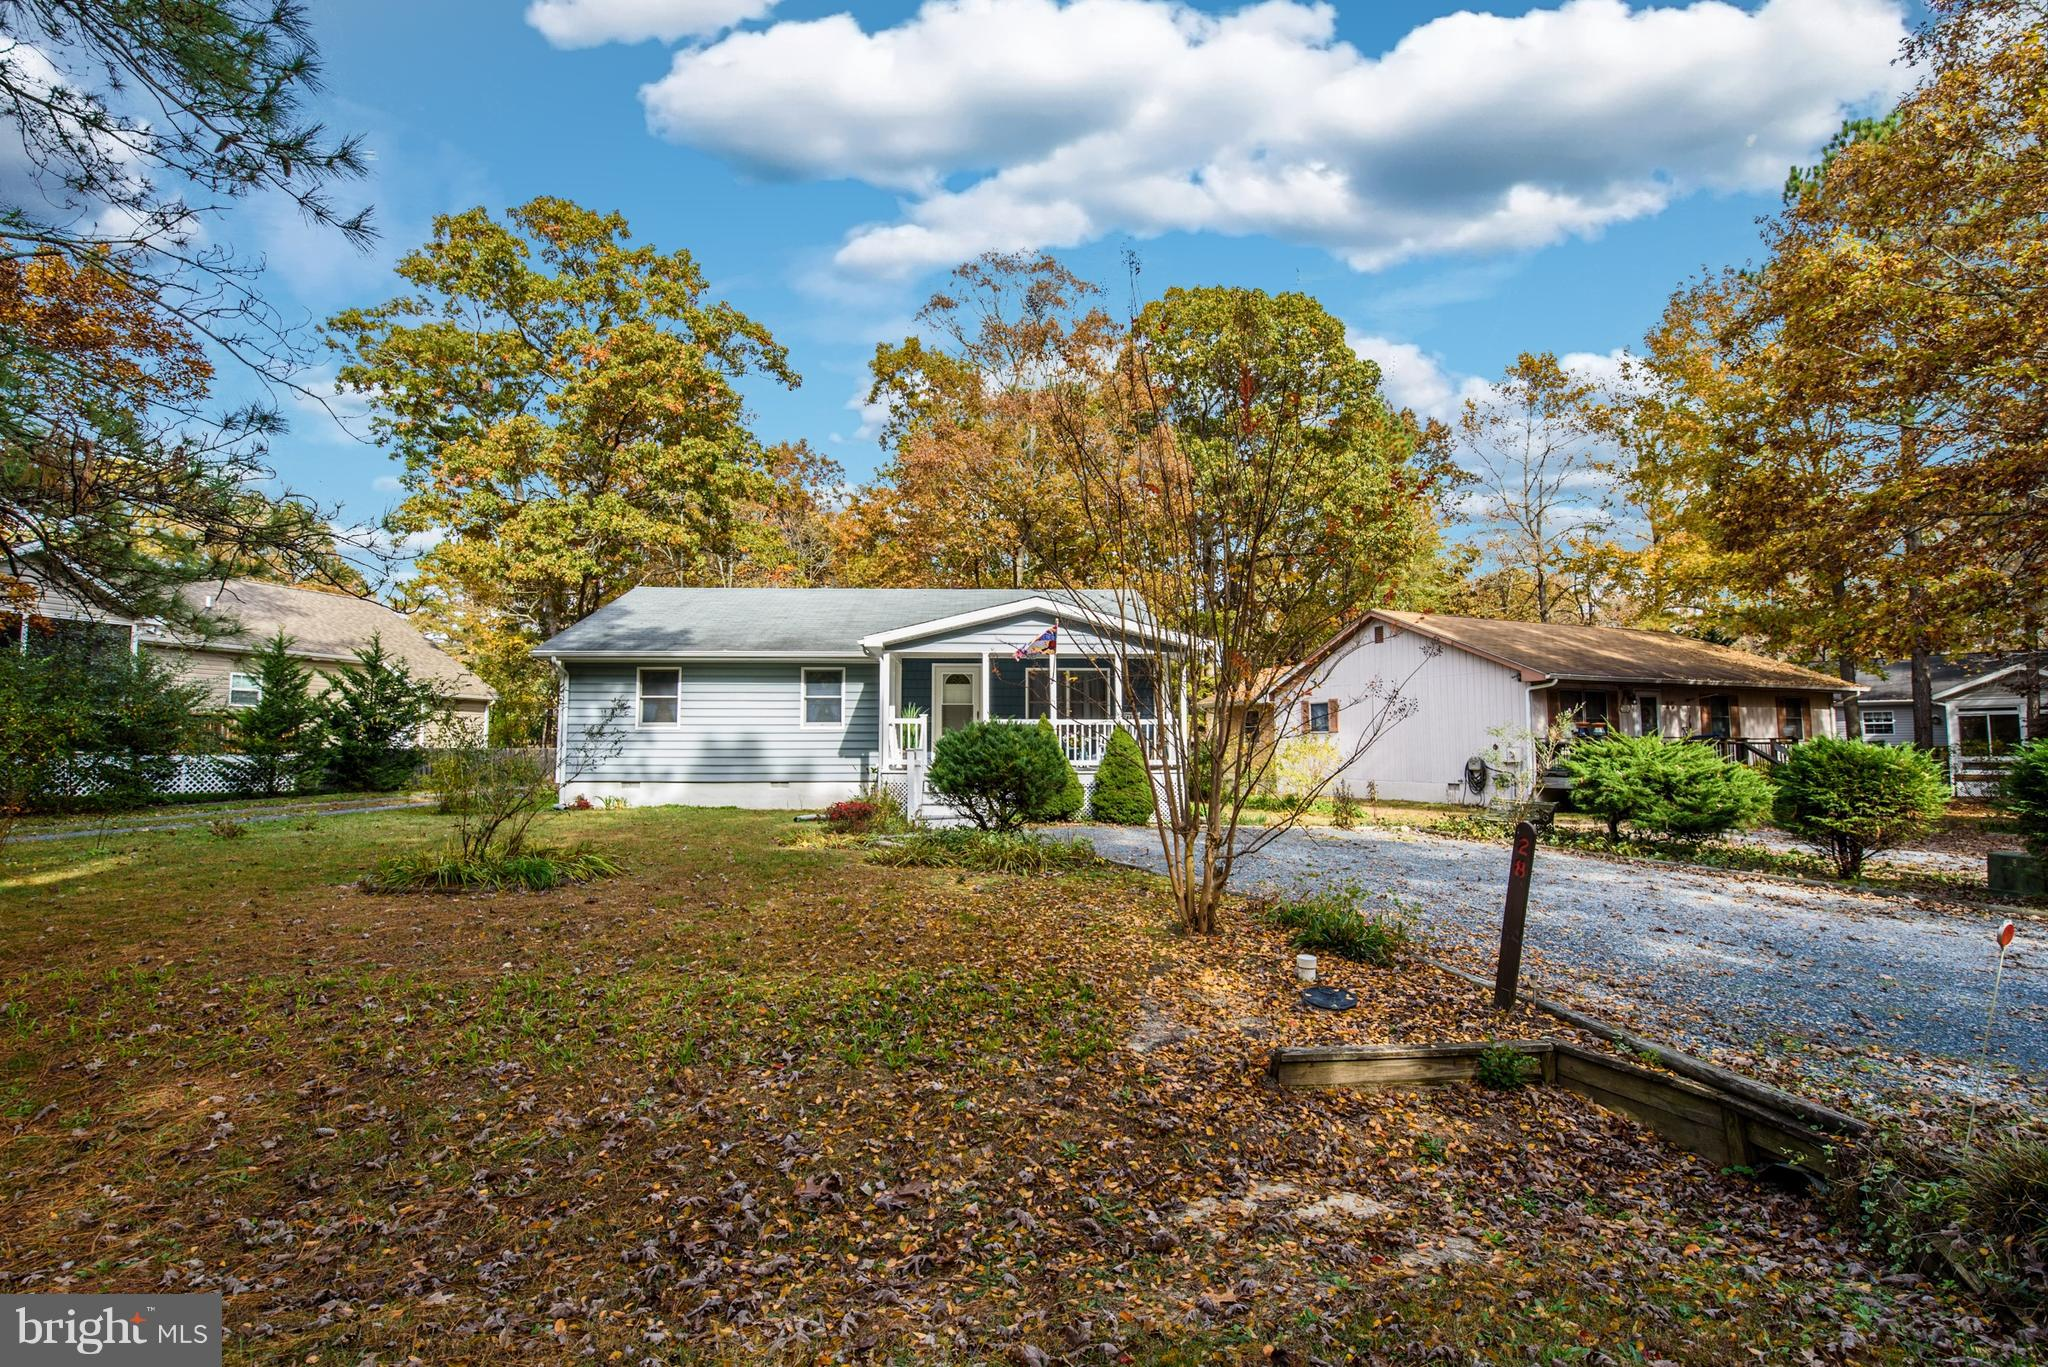 Major Price Adjustment and Absolutely beautiful 3 bedroom, 2 bath home nestled in Ocean Pines is Move In Ready and available for immediate purchase.  The one owner occupied home meticulously and lovingly cared for home features and inviting open front porch , new laminate hardwood floors were done  in 2016 includes Living Room,  Dining Room, Kitchen, Sun room , Den and Hallway.  Newer carpets in all 3 bedrooms and both bathrooms have been update with new vanities and flooring, Master Bath features tub shower combination.   Heat Pump was replaced in 2012 as well as appliances, hot water heater and washer and dryer.  The Roof was replaced in 2005 when the sun room and den was added to the home.  Private setting with oversize lot plenty of room to expand home further out, add a shed or fence in the backyard.  Plenty of Attic storage for year round living or perfect to store summer beach toys.  Parking is not a problem driveway will easily accommodate 4 to 5 cars or boat and trailer! Aggressively priced for current market conditions!! This home will not last long so don't want to schedule your private showing.